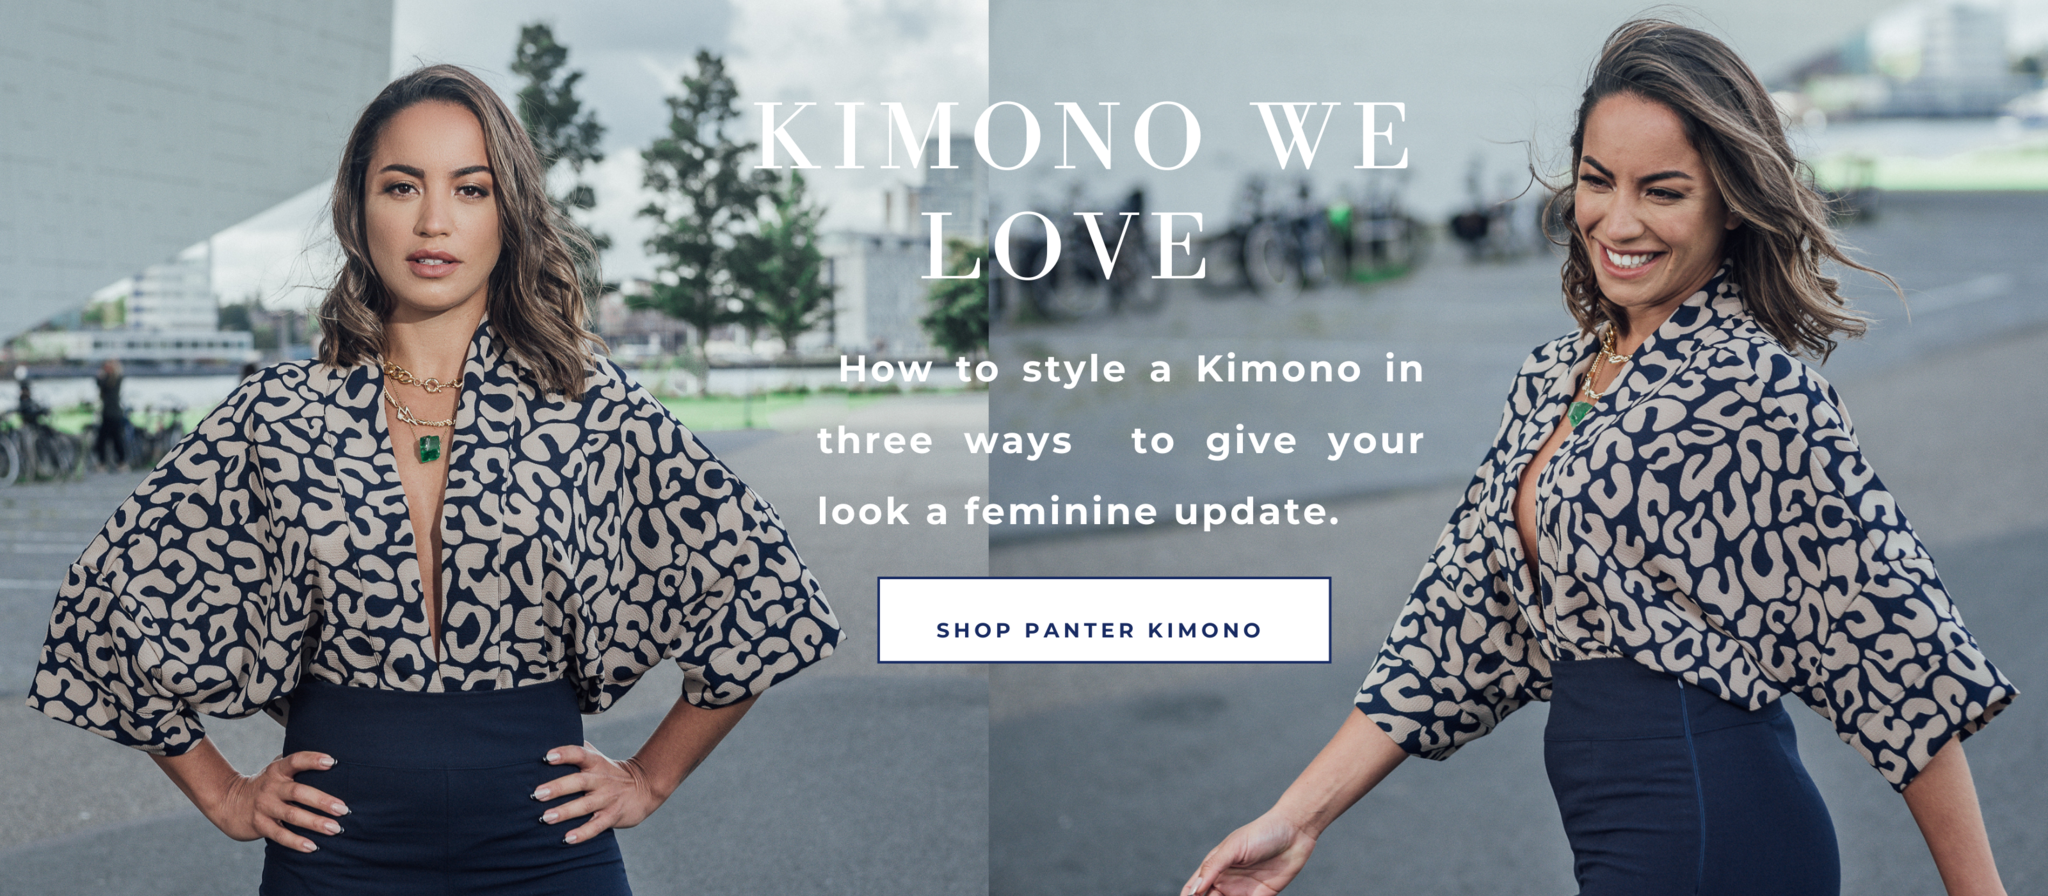 How to style a Kimono in three ways  to give your look a feminine update.